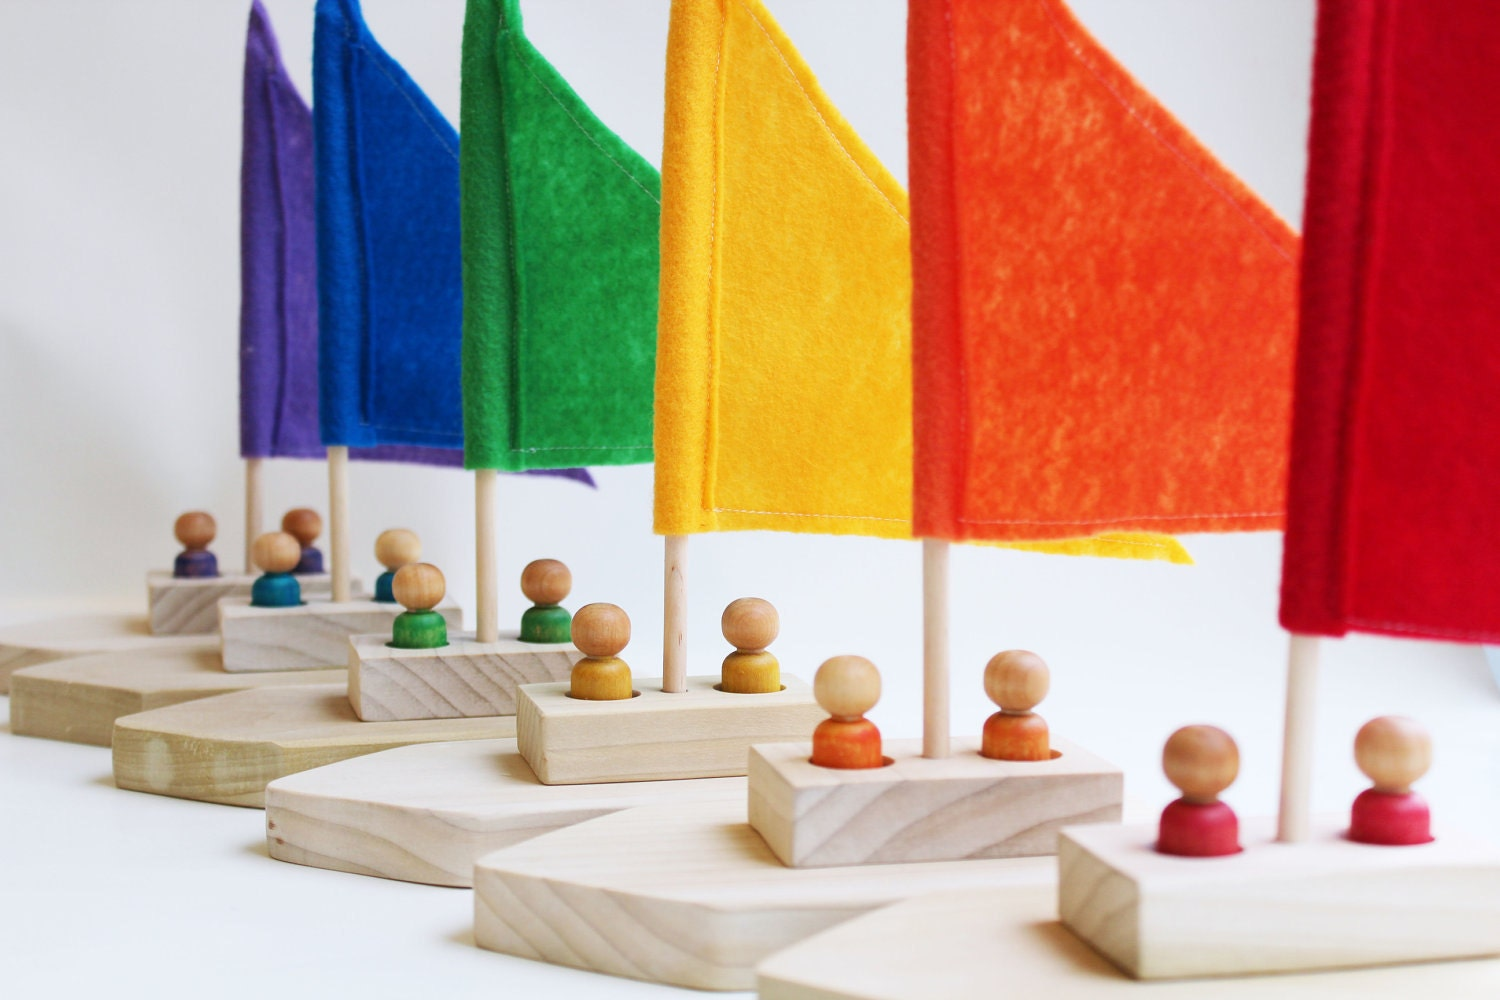 Rainbow Regatta - Choose Your Color - A Montessori and Waldorf Inspired Pretend Play and Sailing Toy - MamaMayI